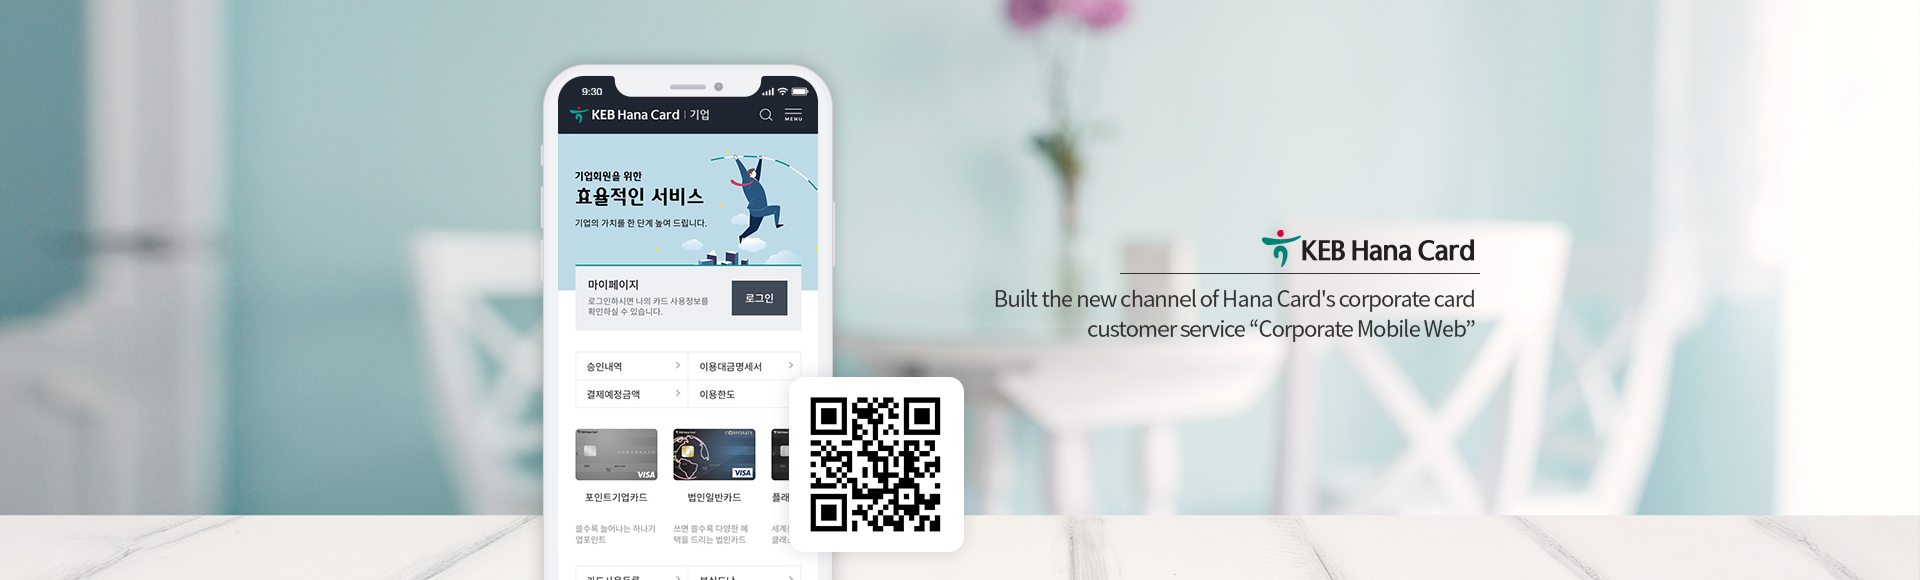 "Built the new channel of Hana Card's corporate card customer service ""Corporate Mobile Web"""